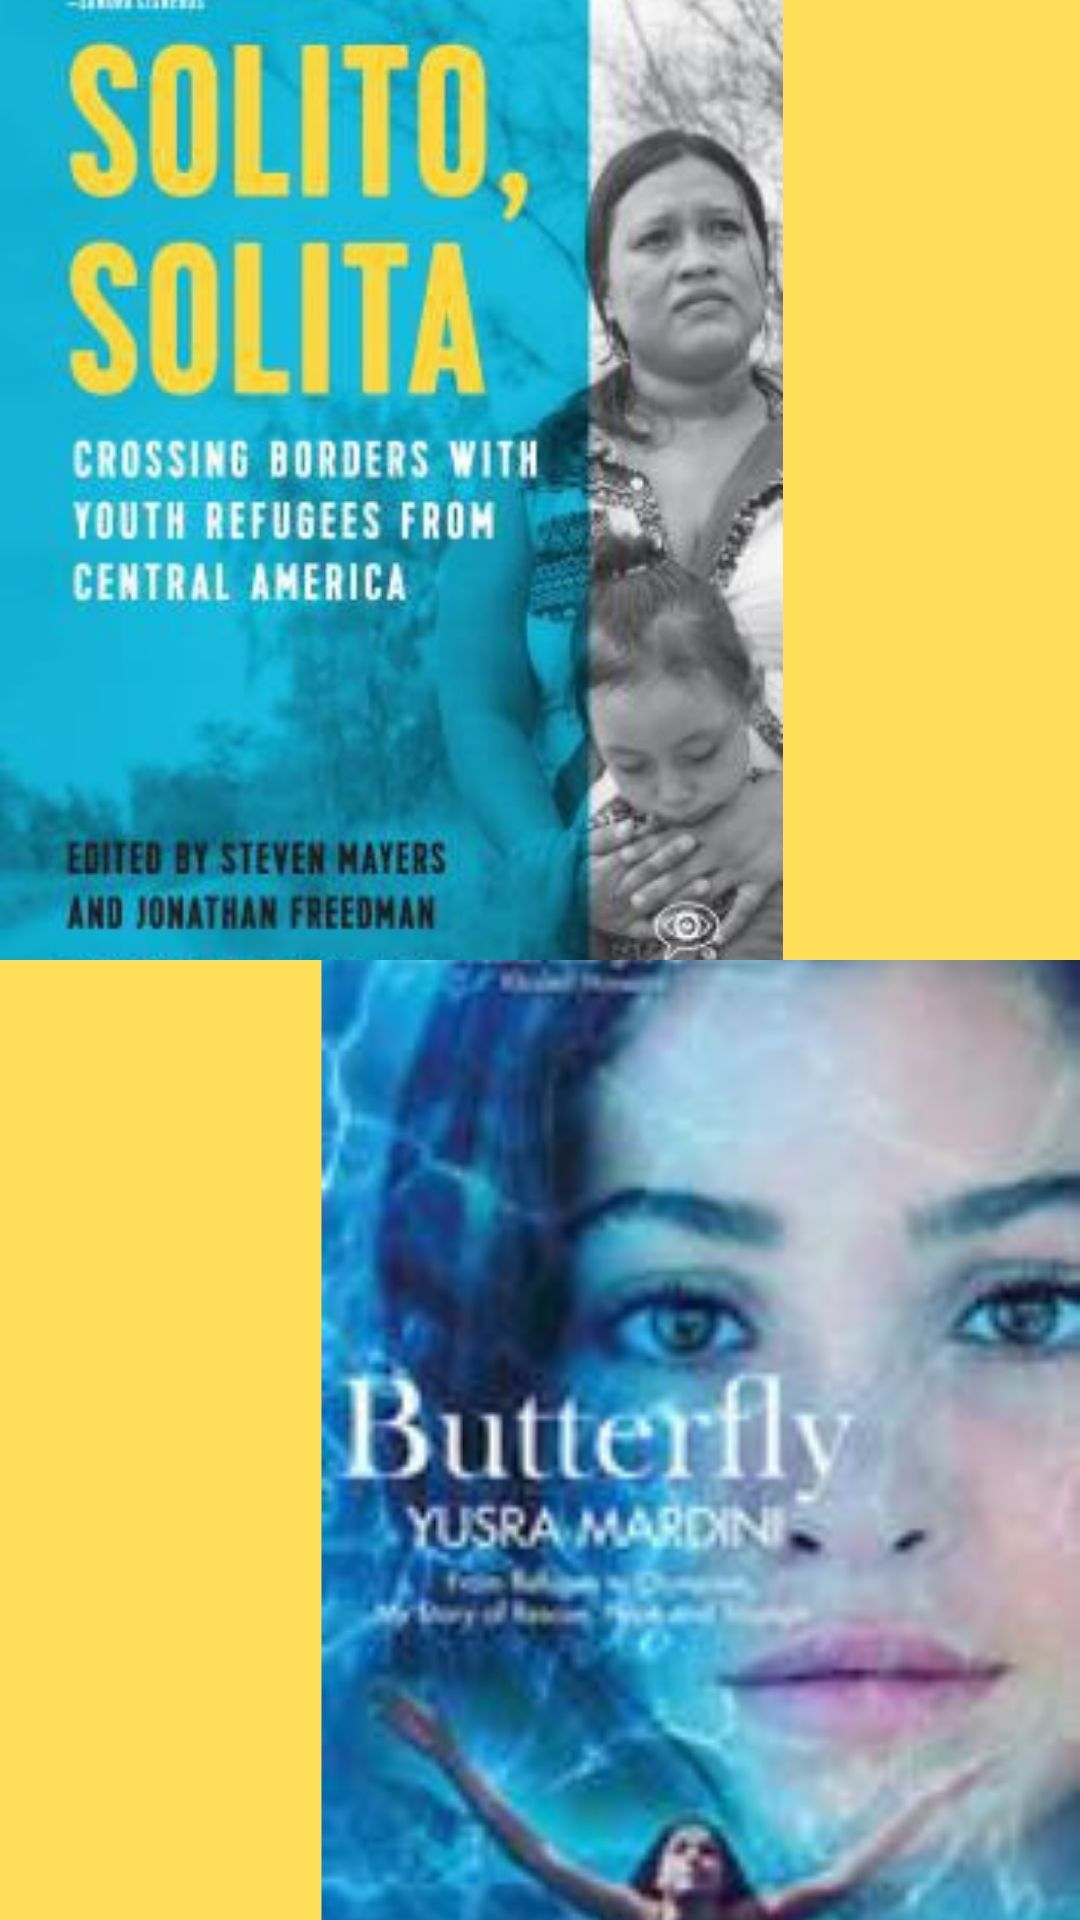 OurSharedShelf Feminist Book Club: Solito,Solita and Butterfly